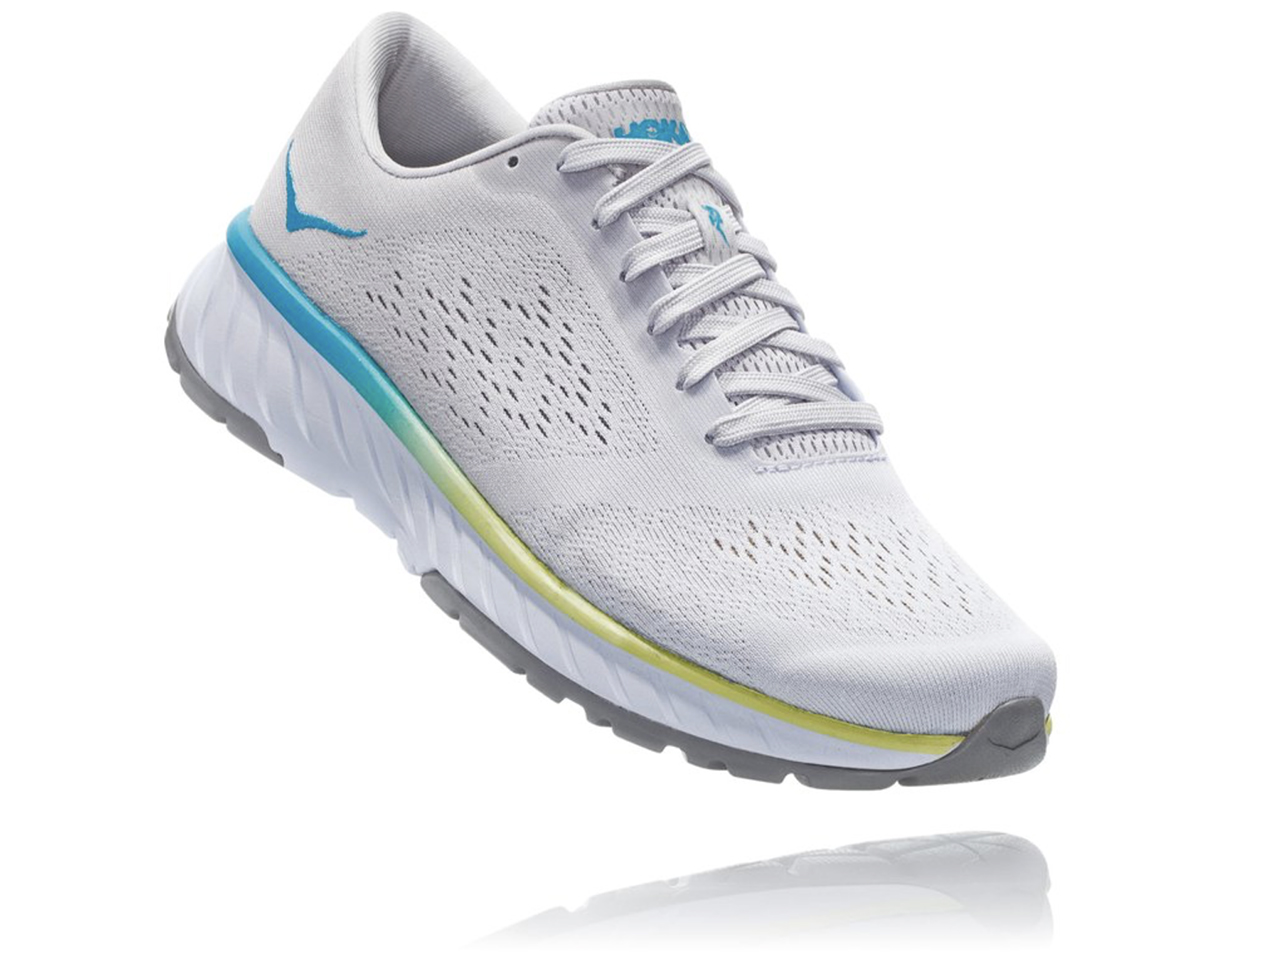 Great running shoes: Hoka's Cavu 2 shoe in white